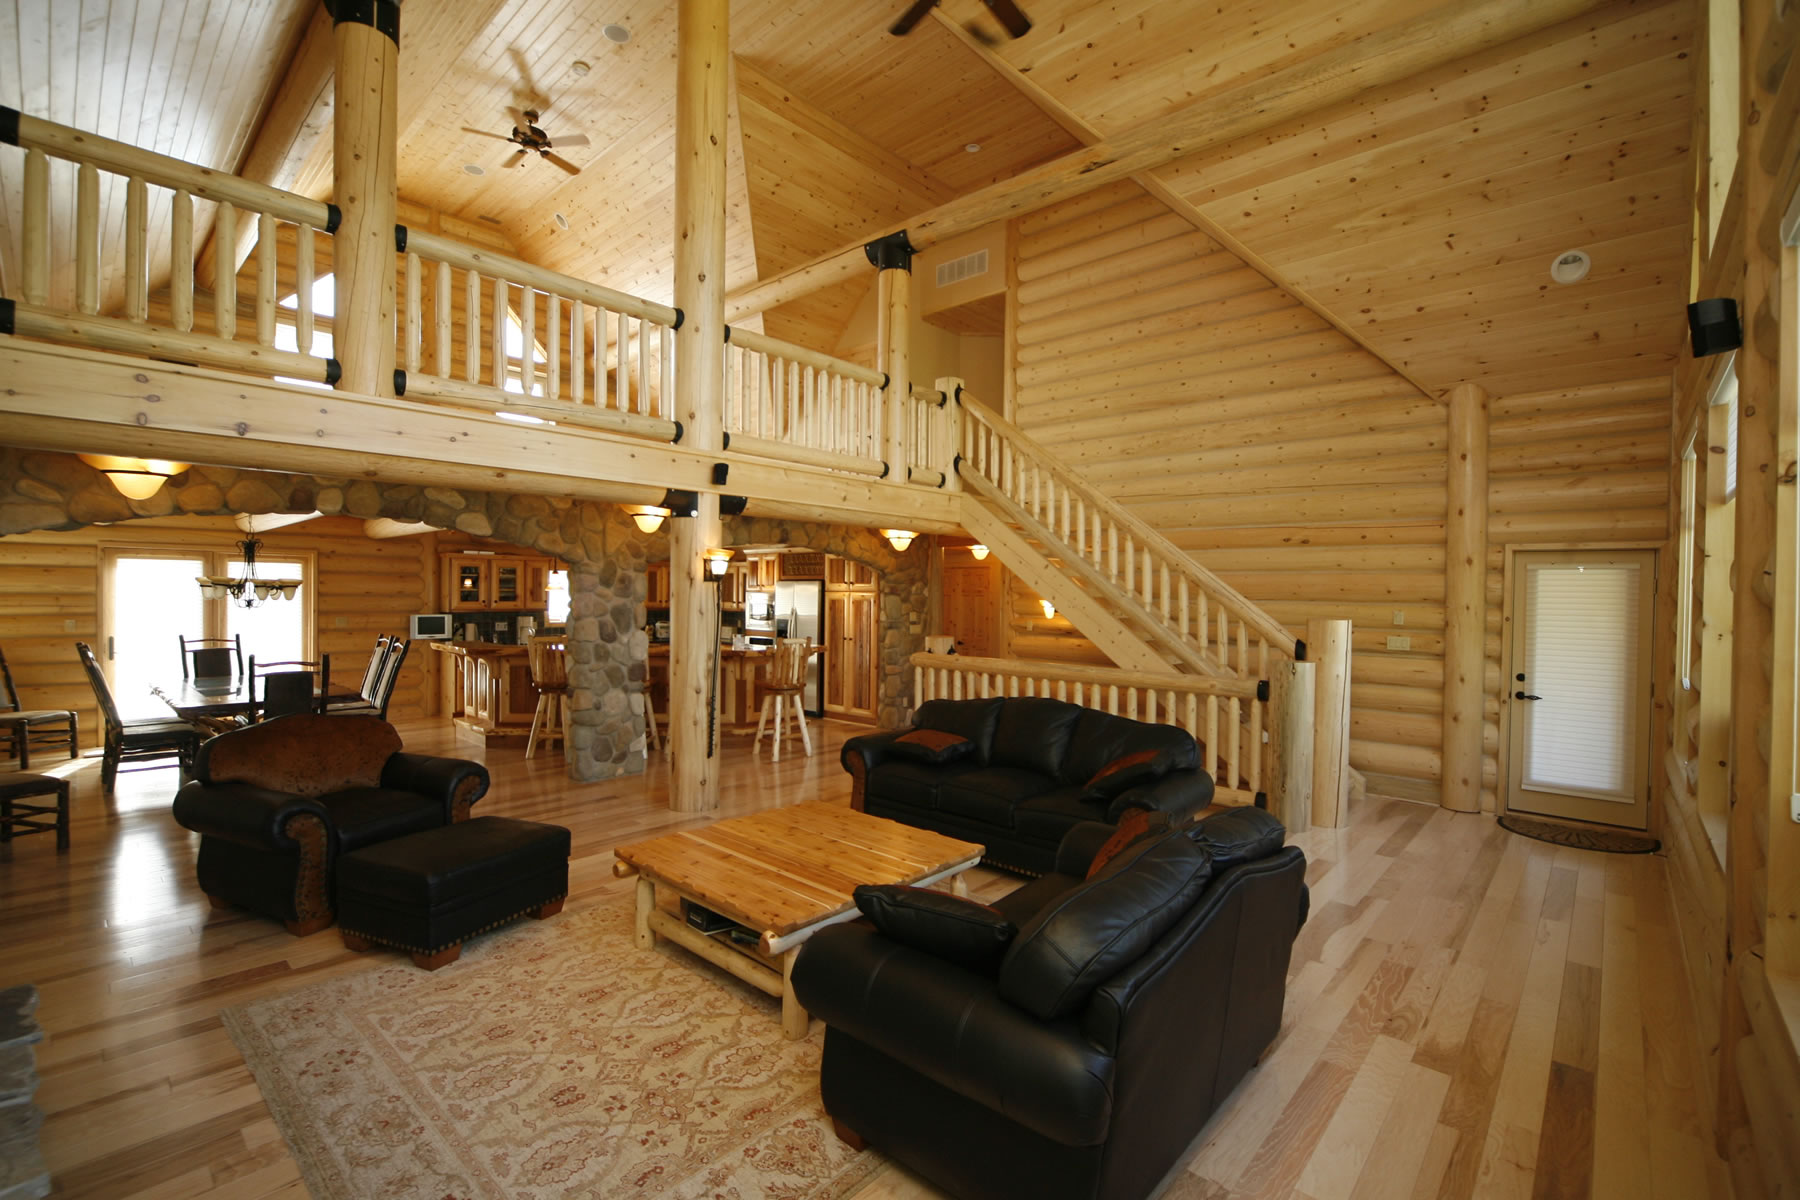 Whisper creek log homes oke woodsmith building systems inc Log homes interiors